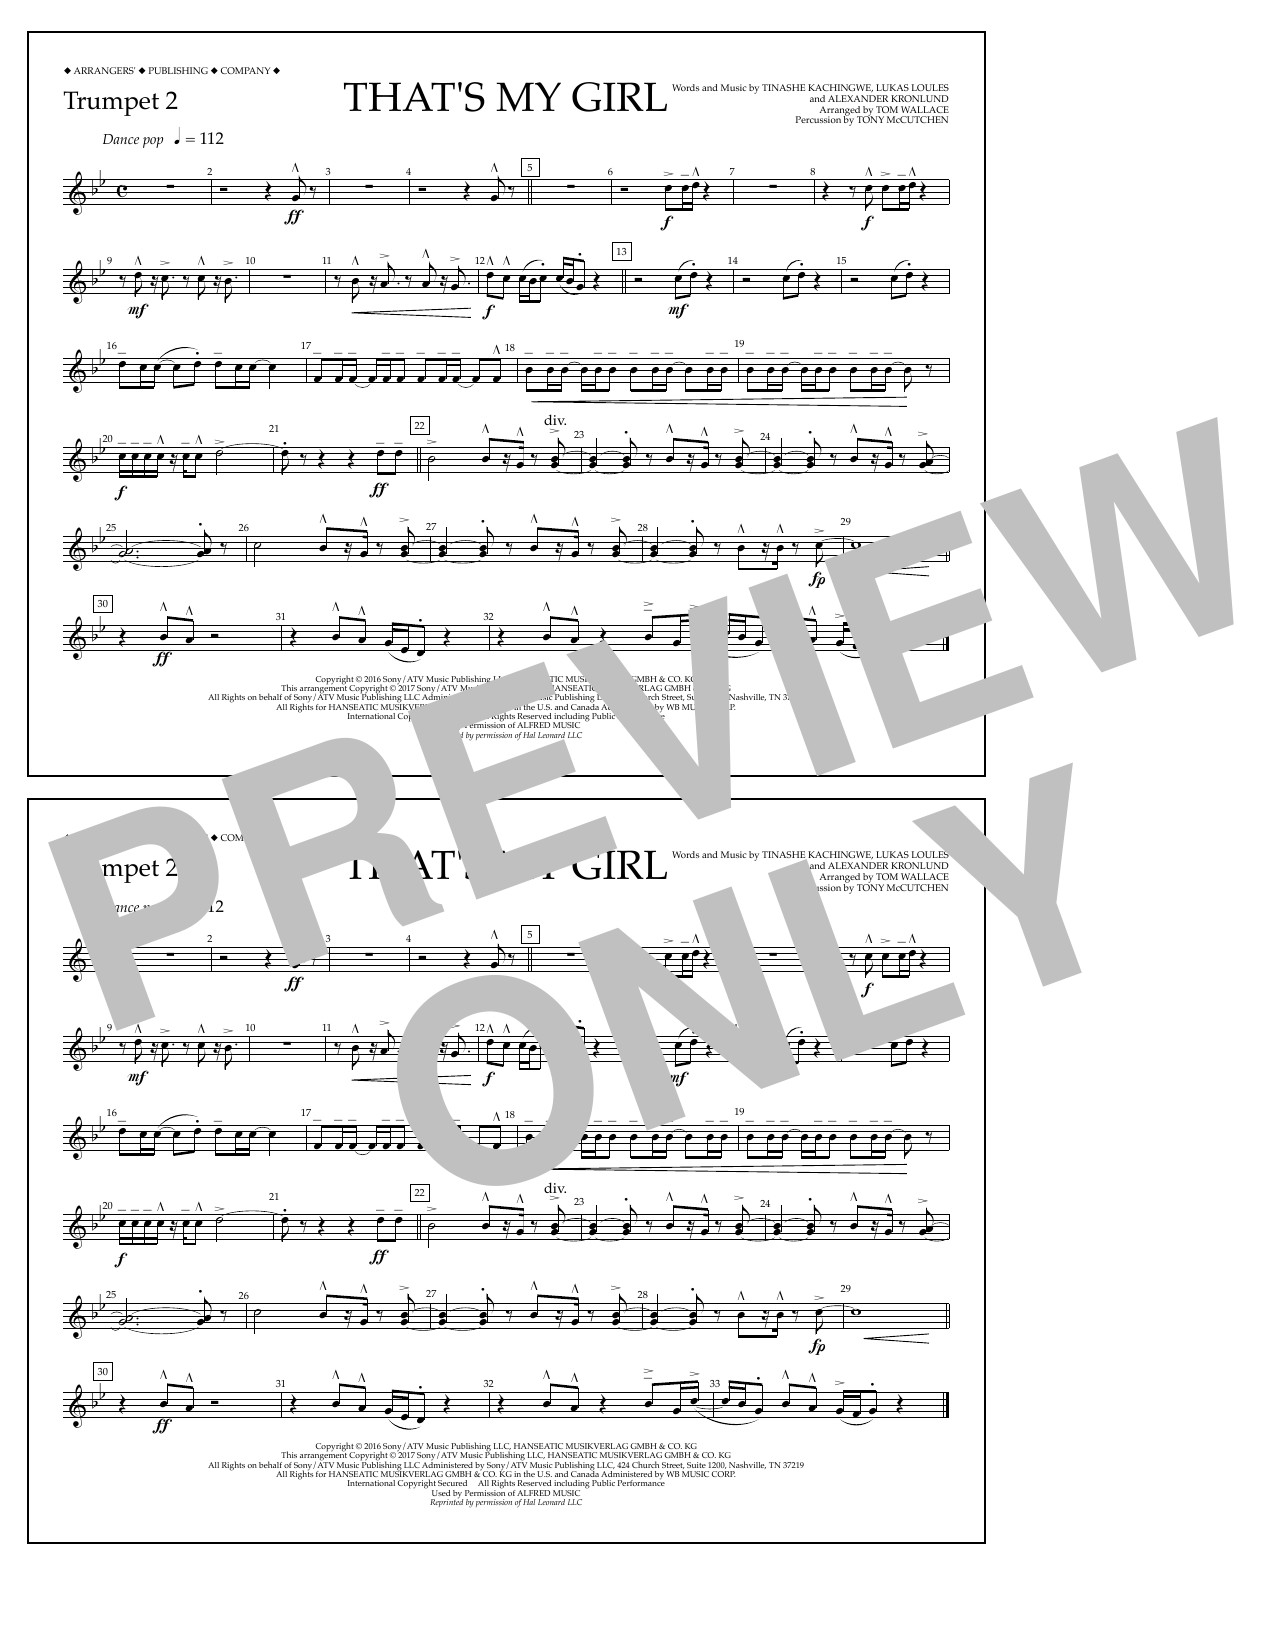 That's My Girl - Trumpet 2 Sheet Music